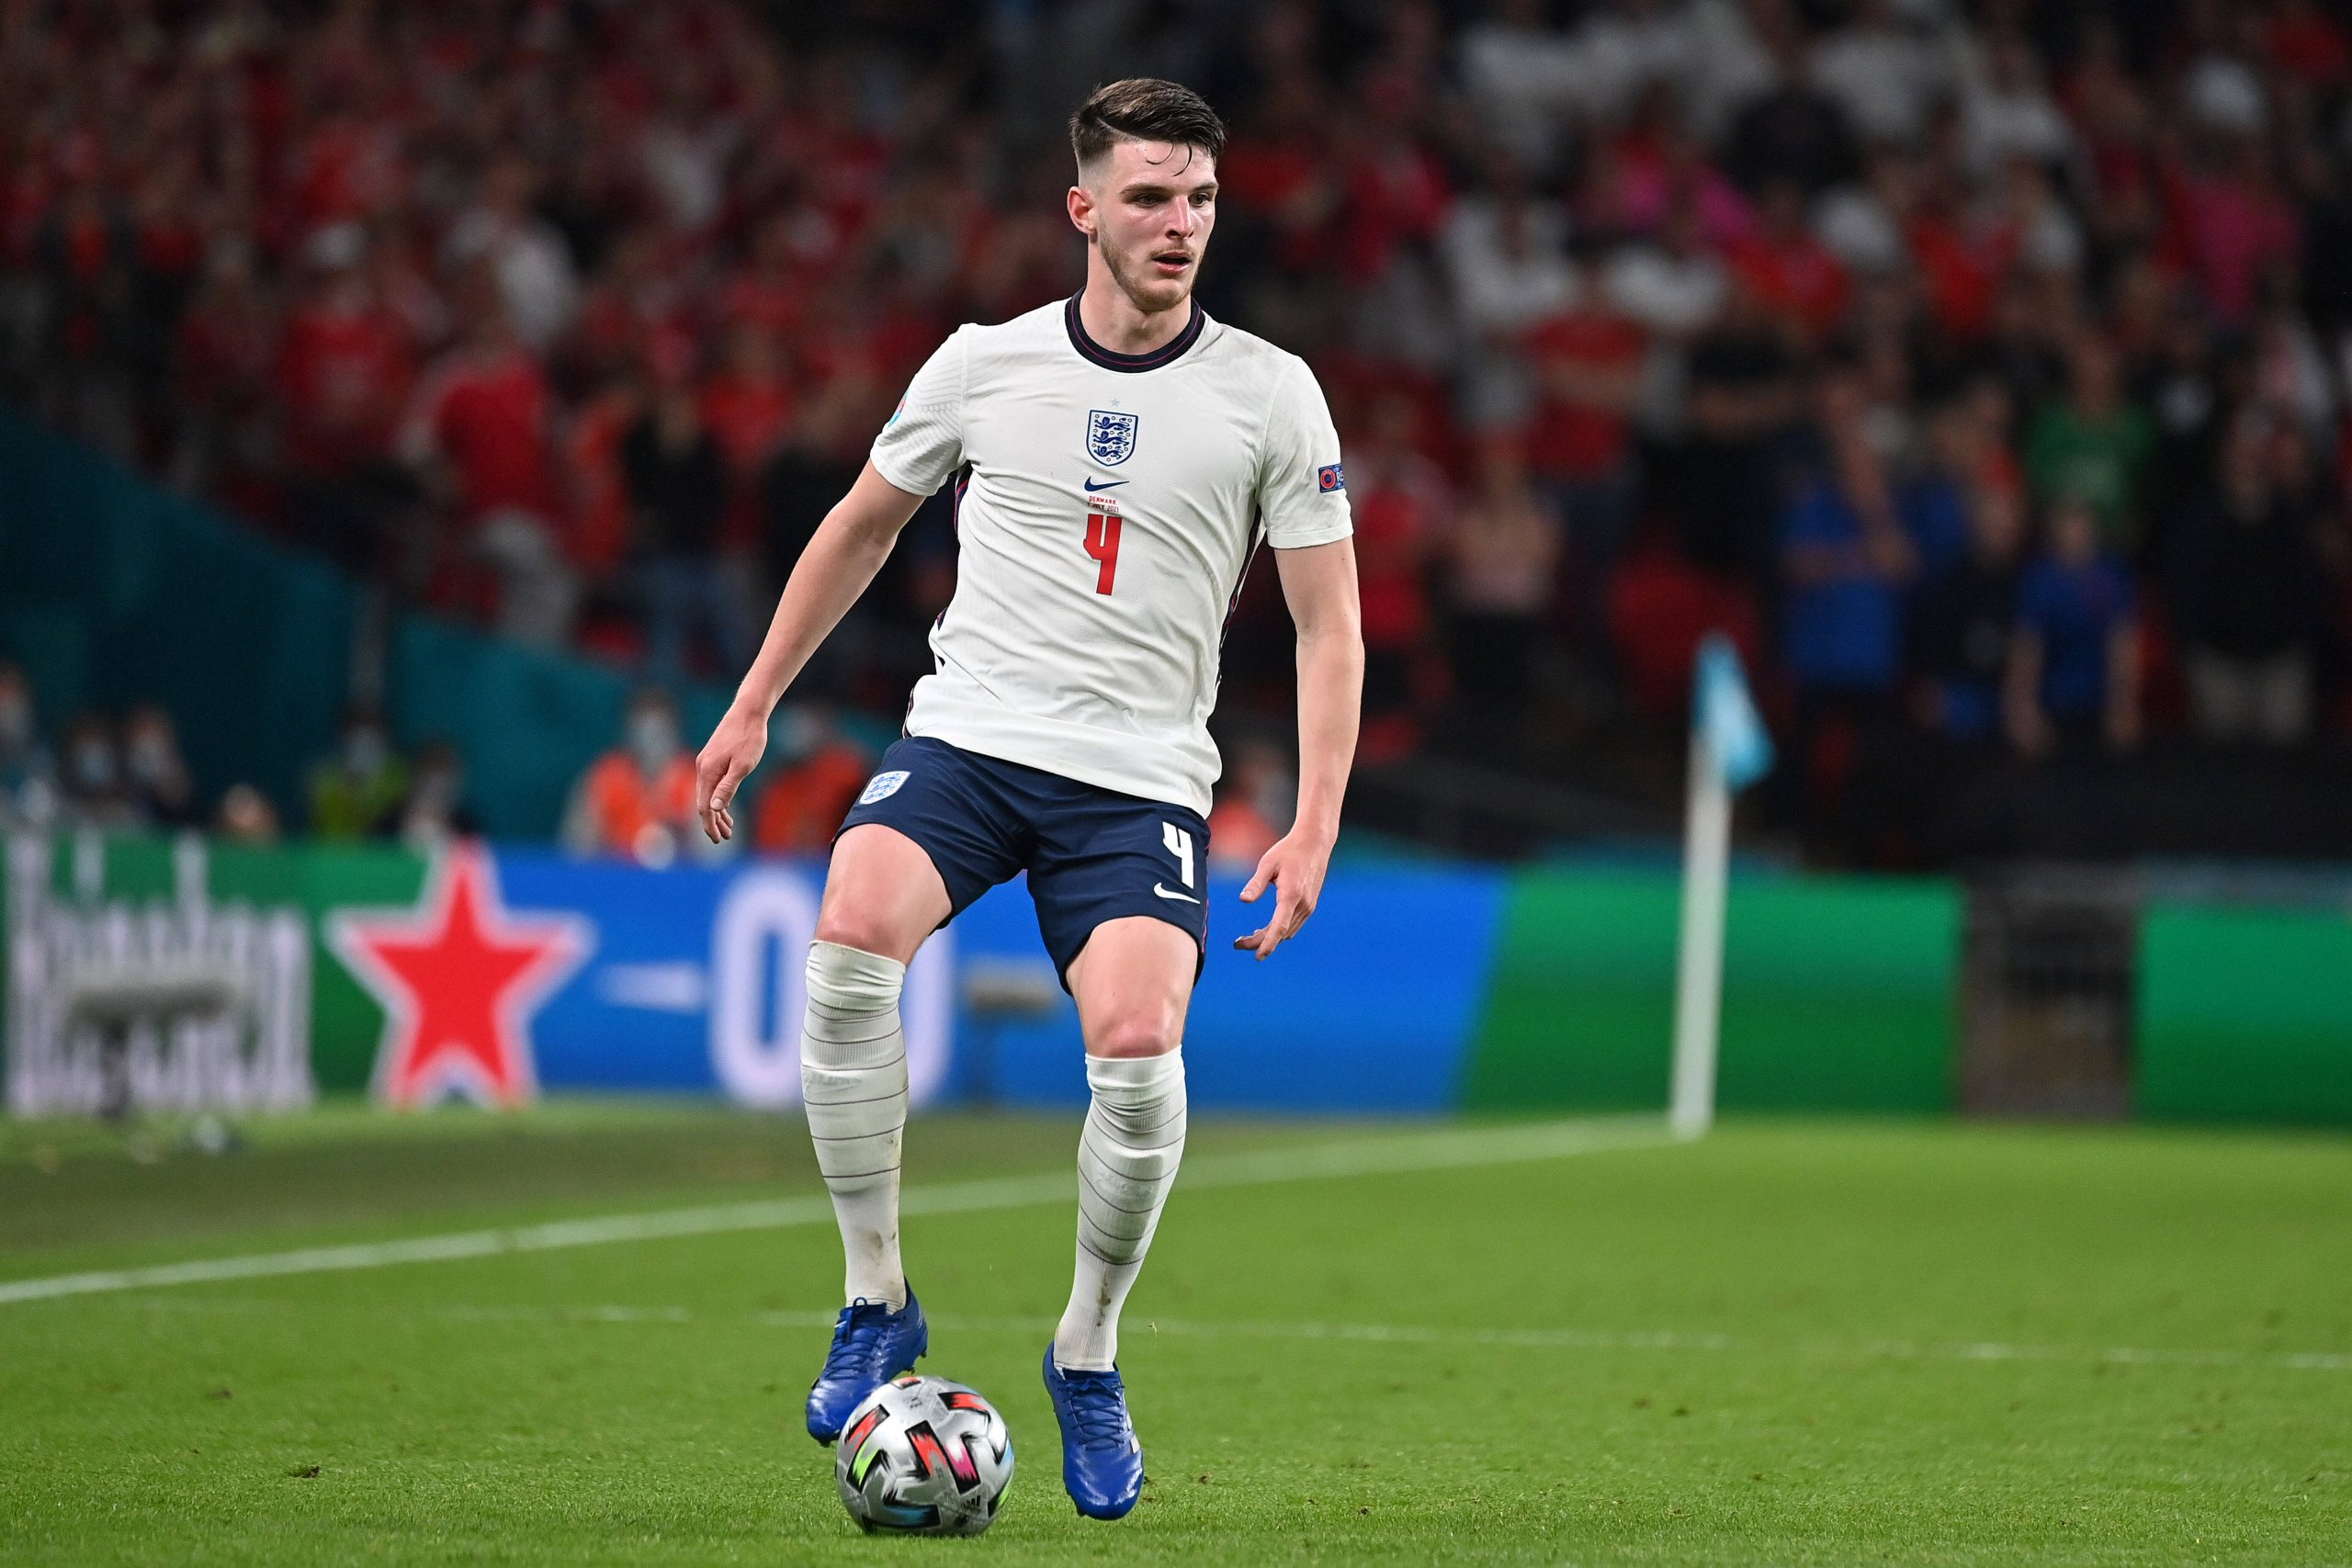 West Ham United's Declan Rice impressed at the Euros with England.